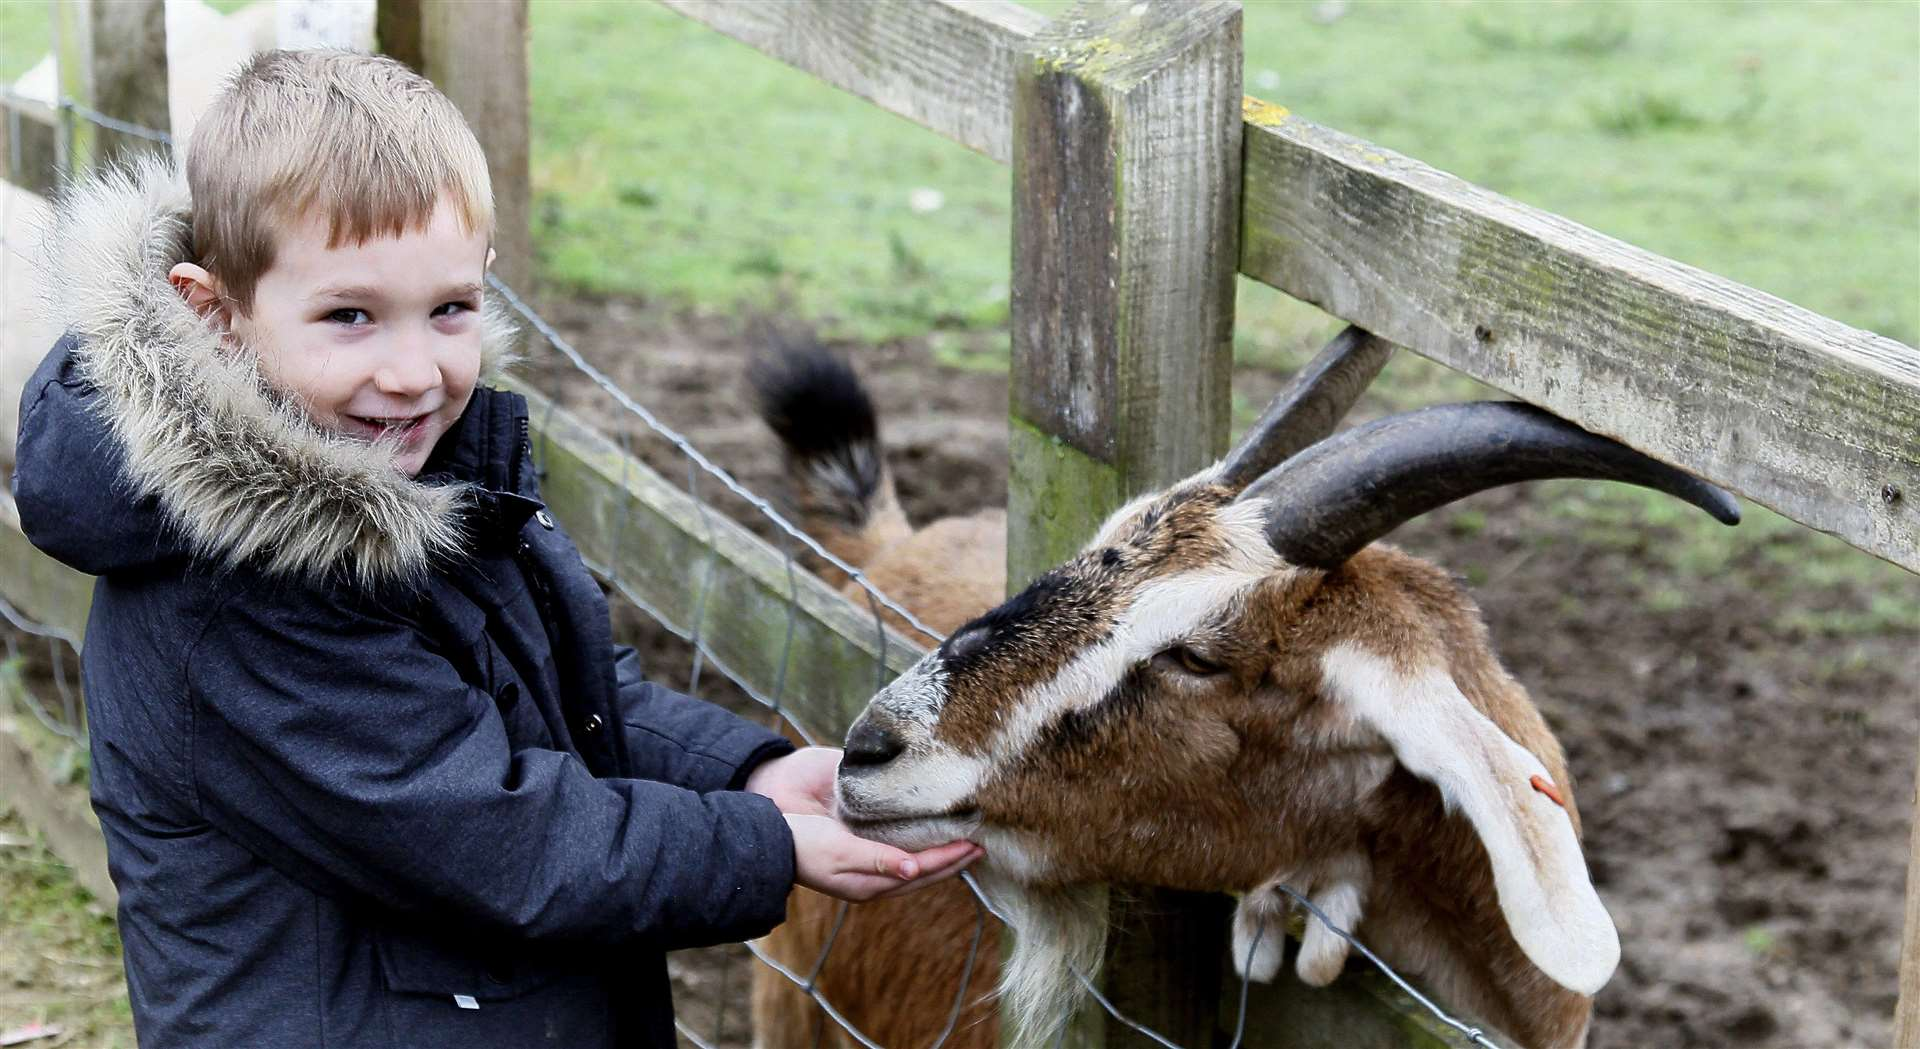 Wrap up warm and meet the animals at Kent Life